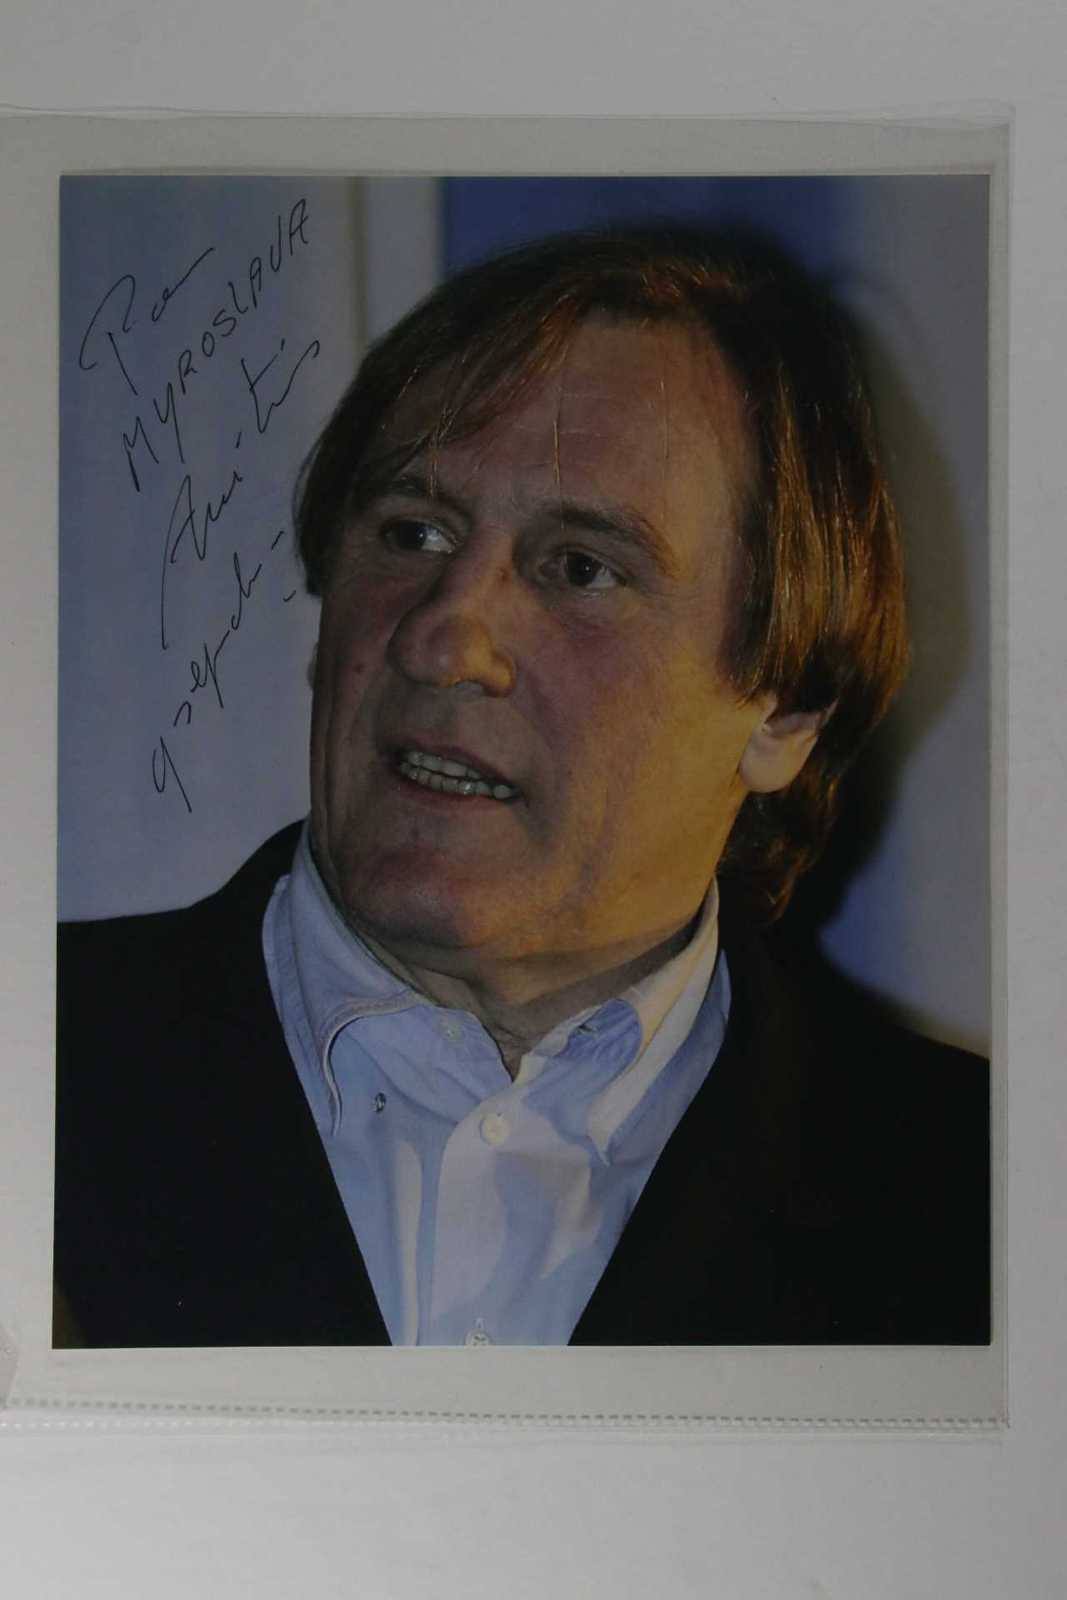 Primary image for Gerard Depardieu Signed Autographed Glossy 8x10 Photo